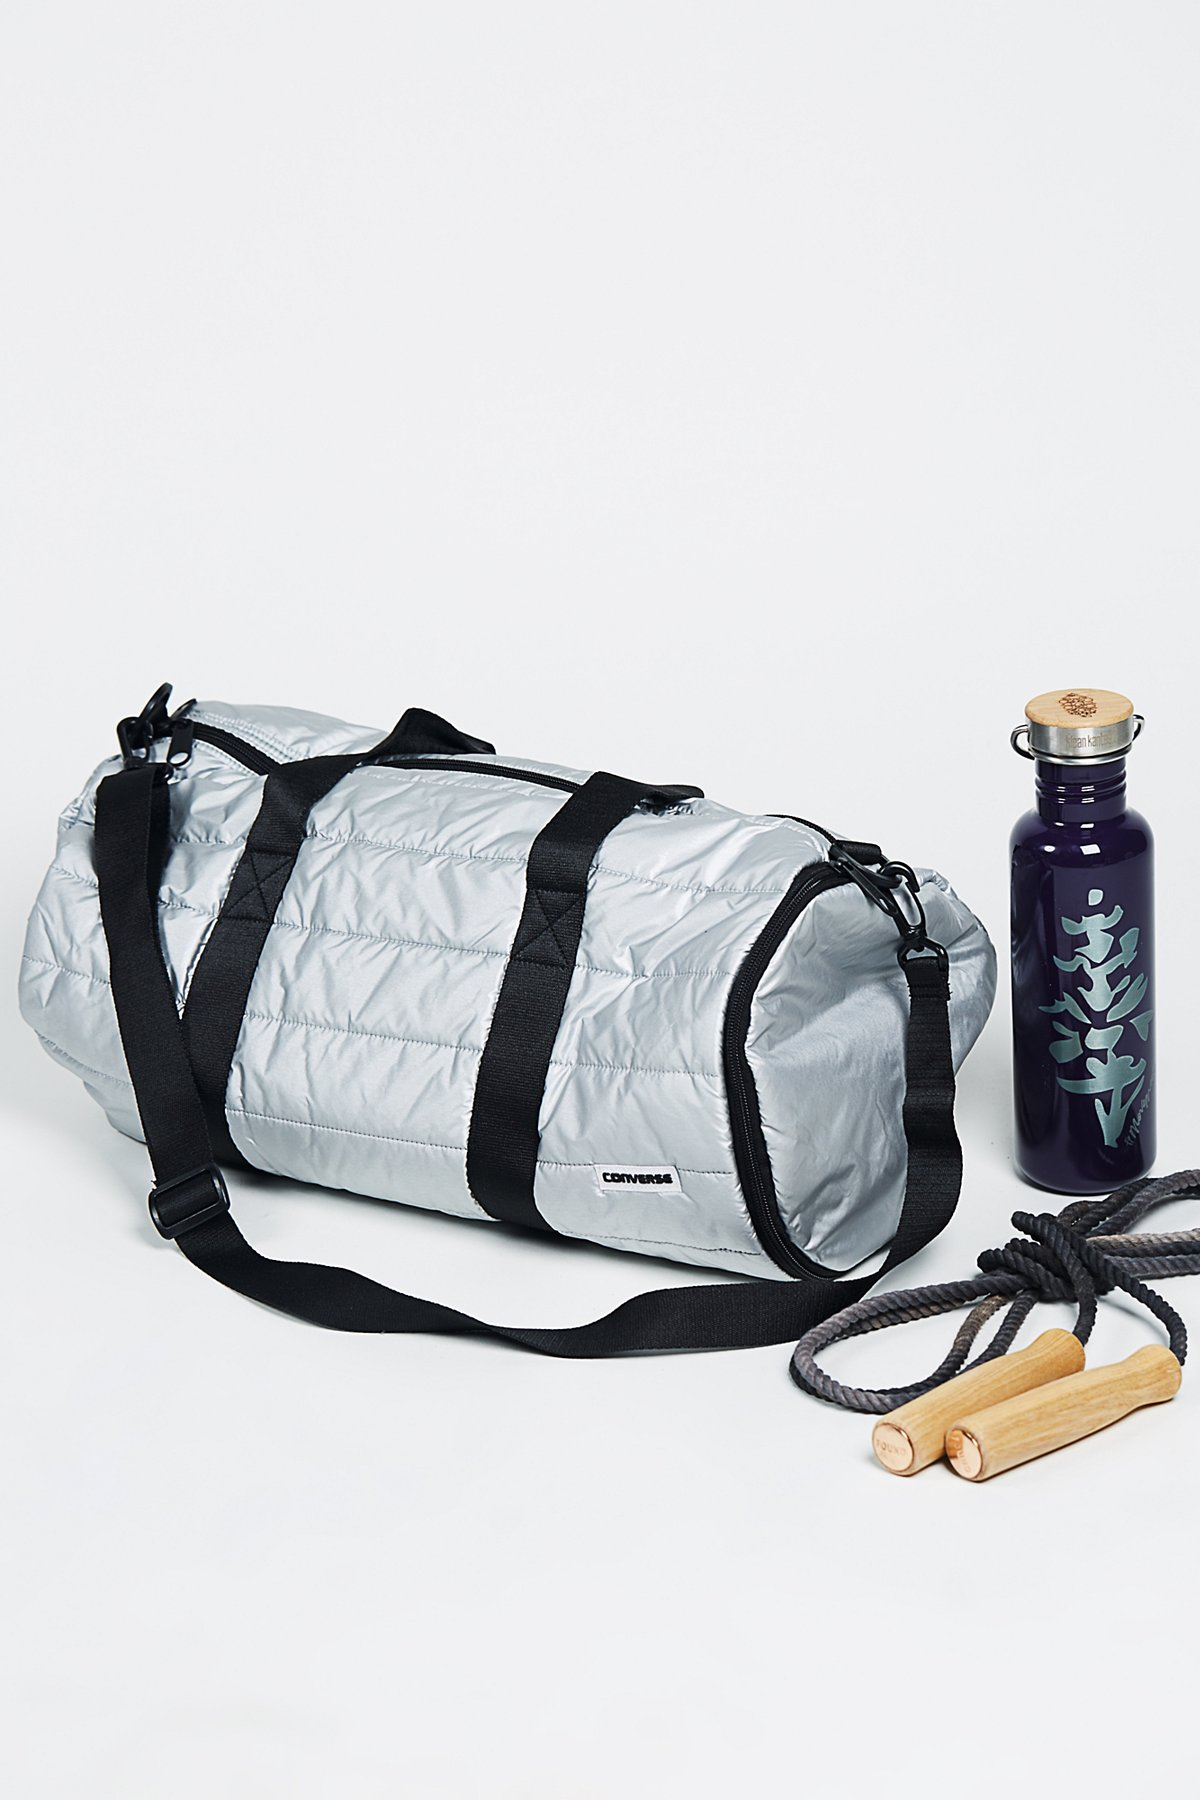 Converse Packable Duffel